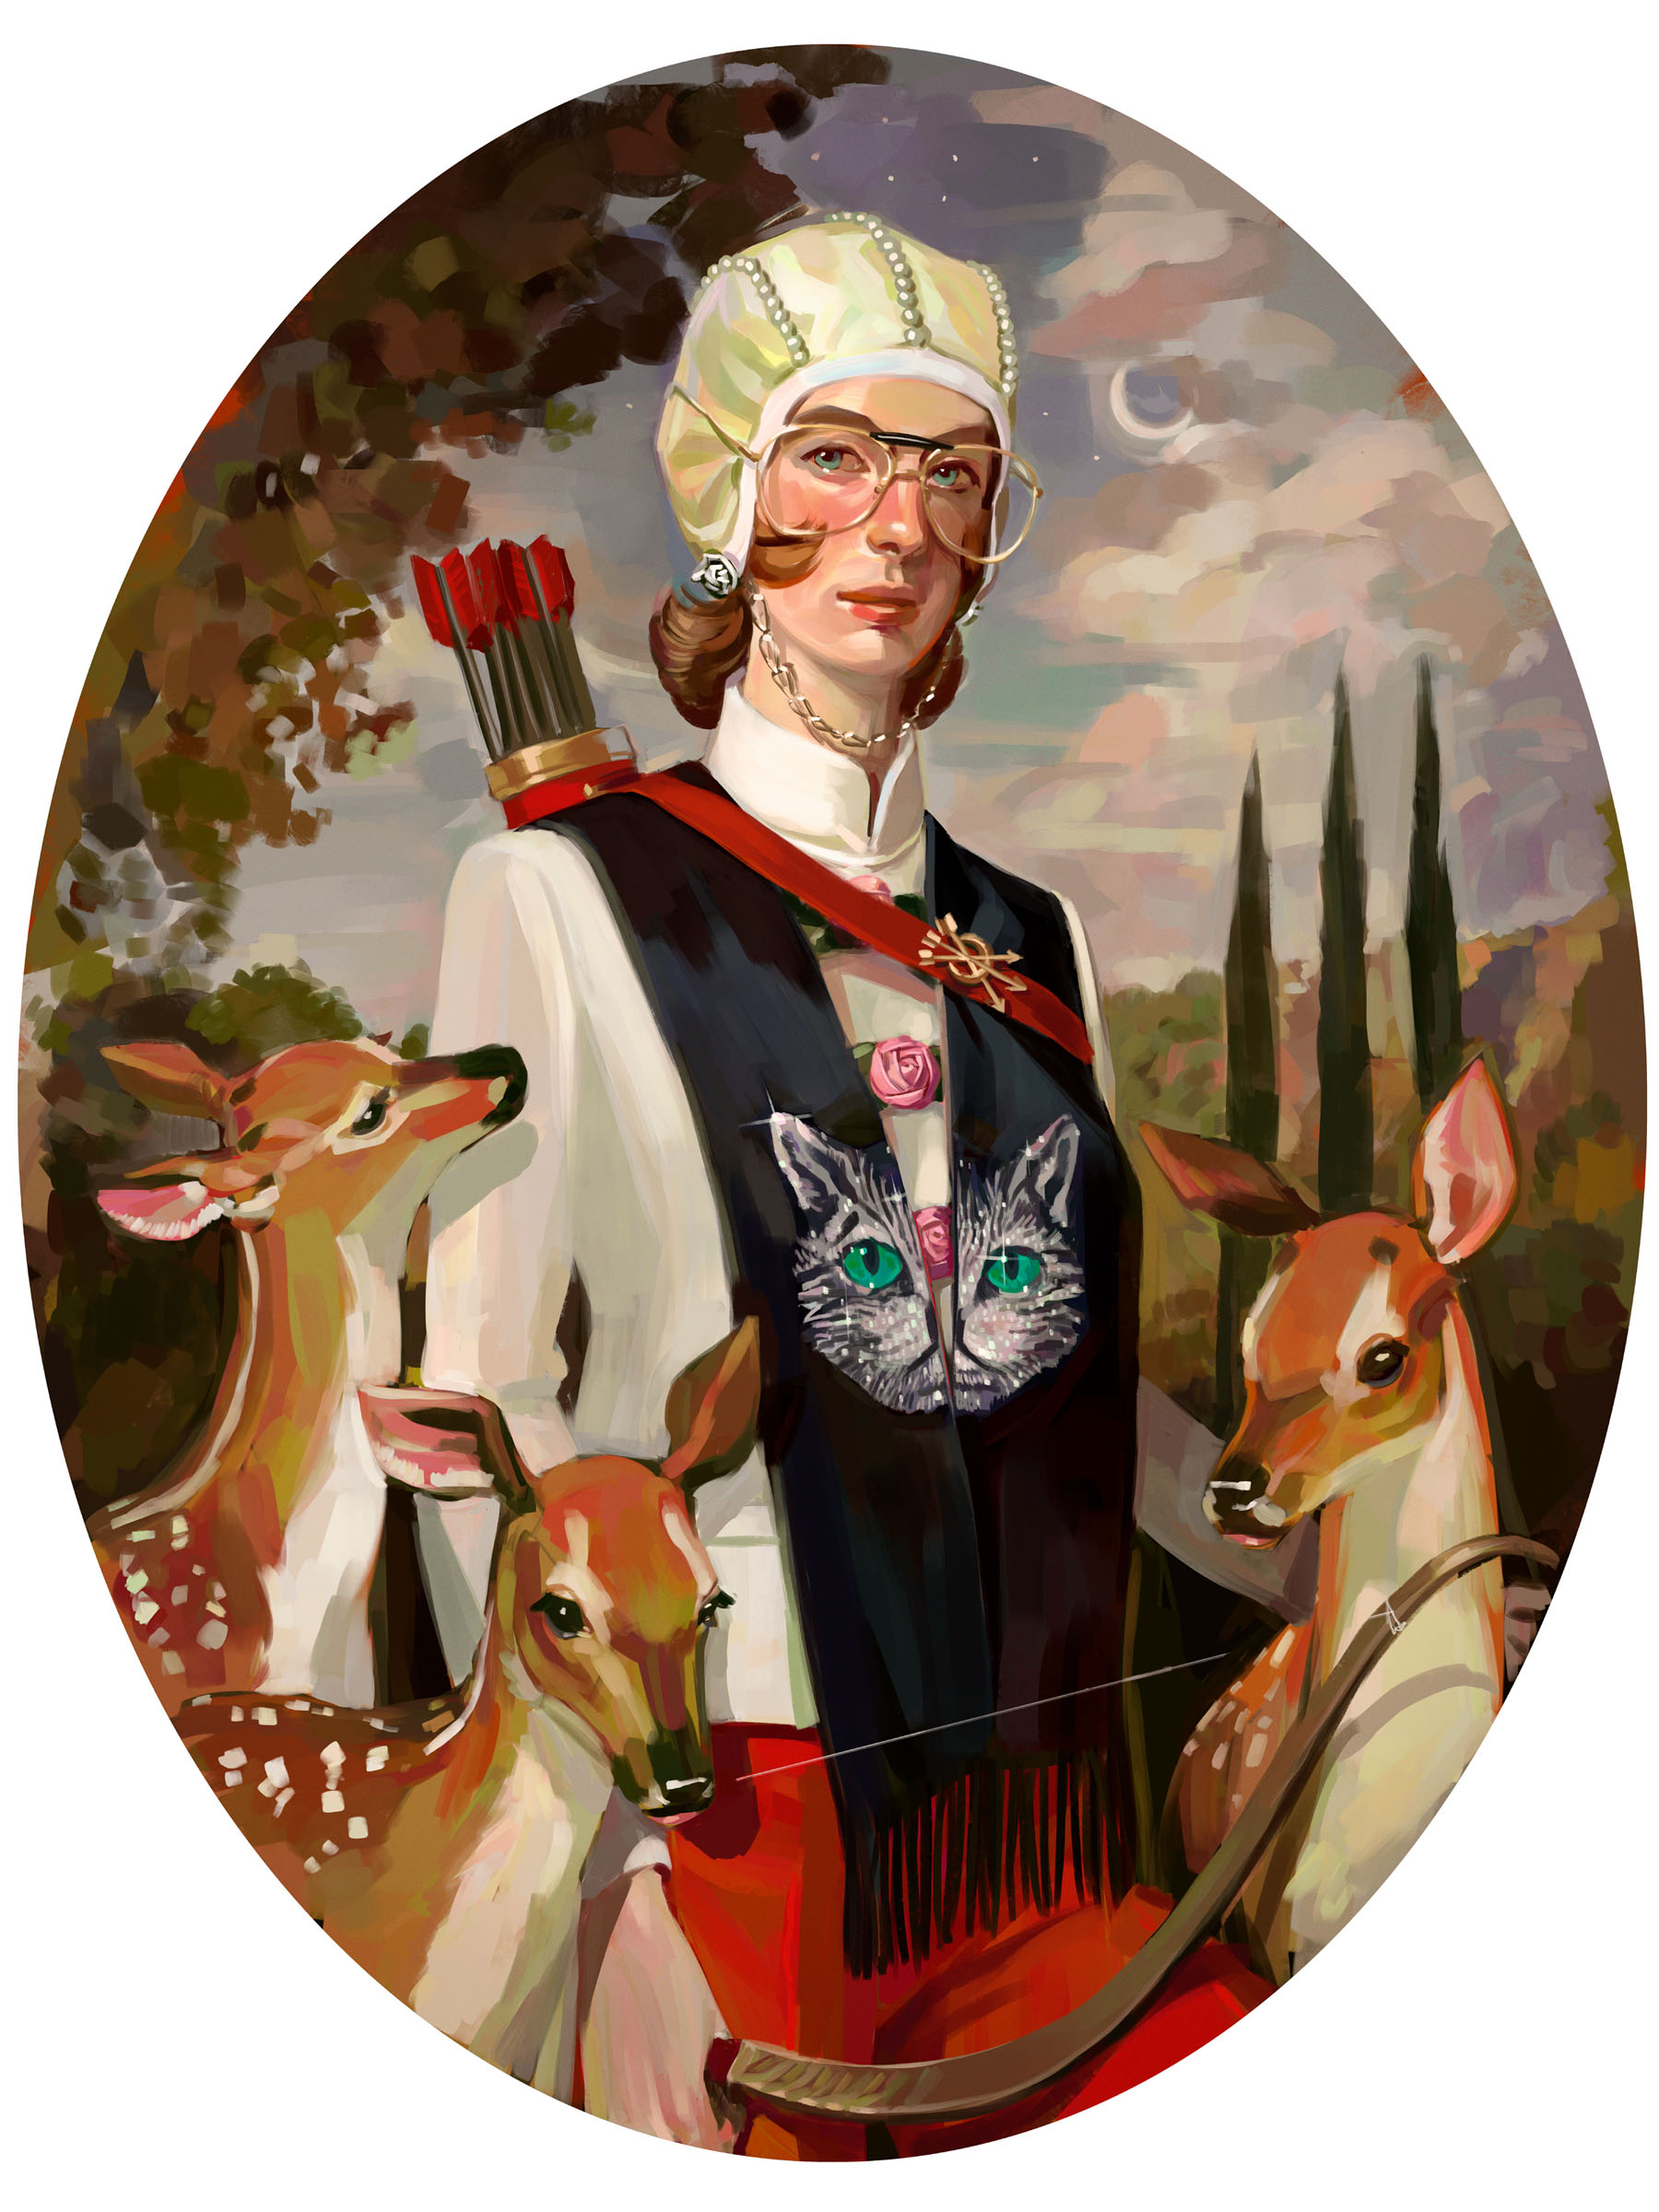 Gucci Gift Giving campaign by Spanish artist Ignasi Monreal